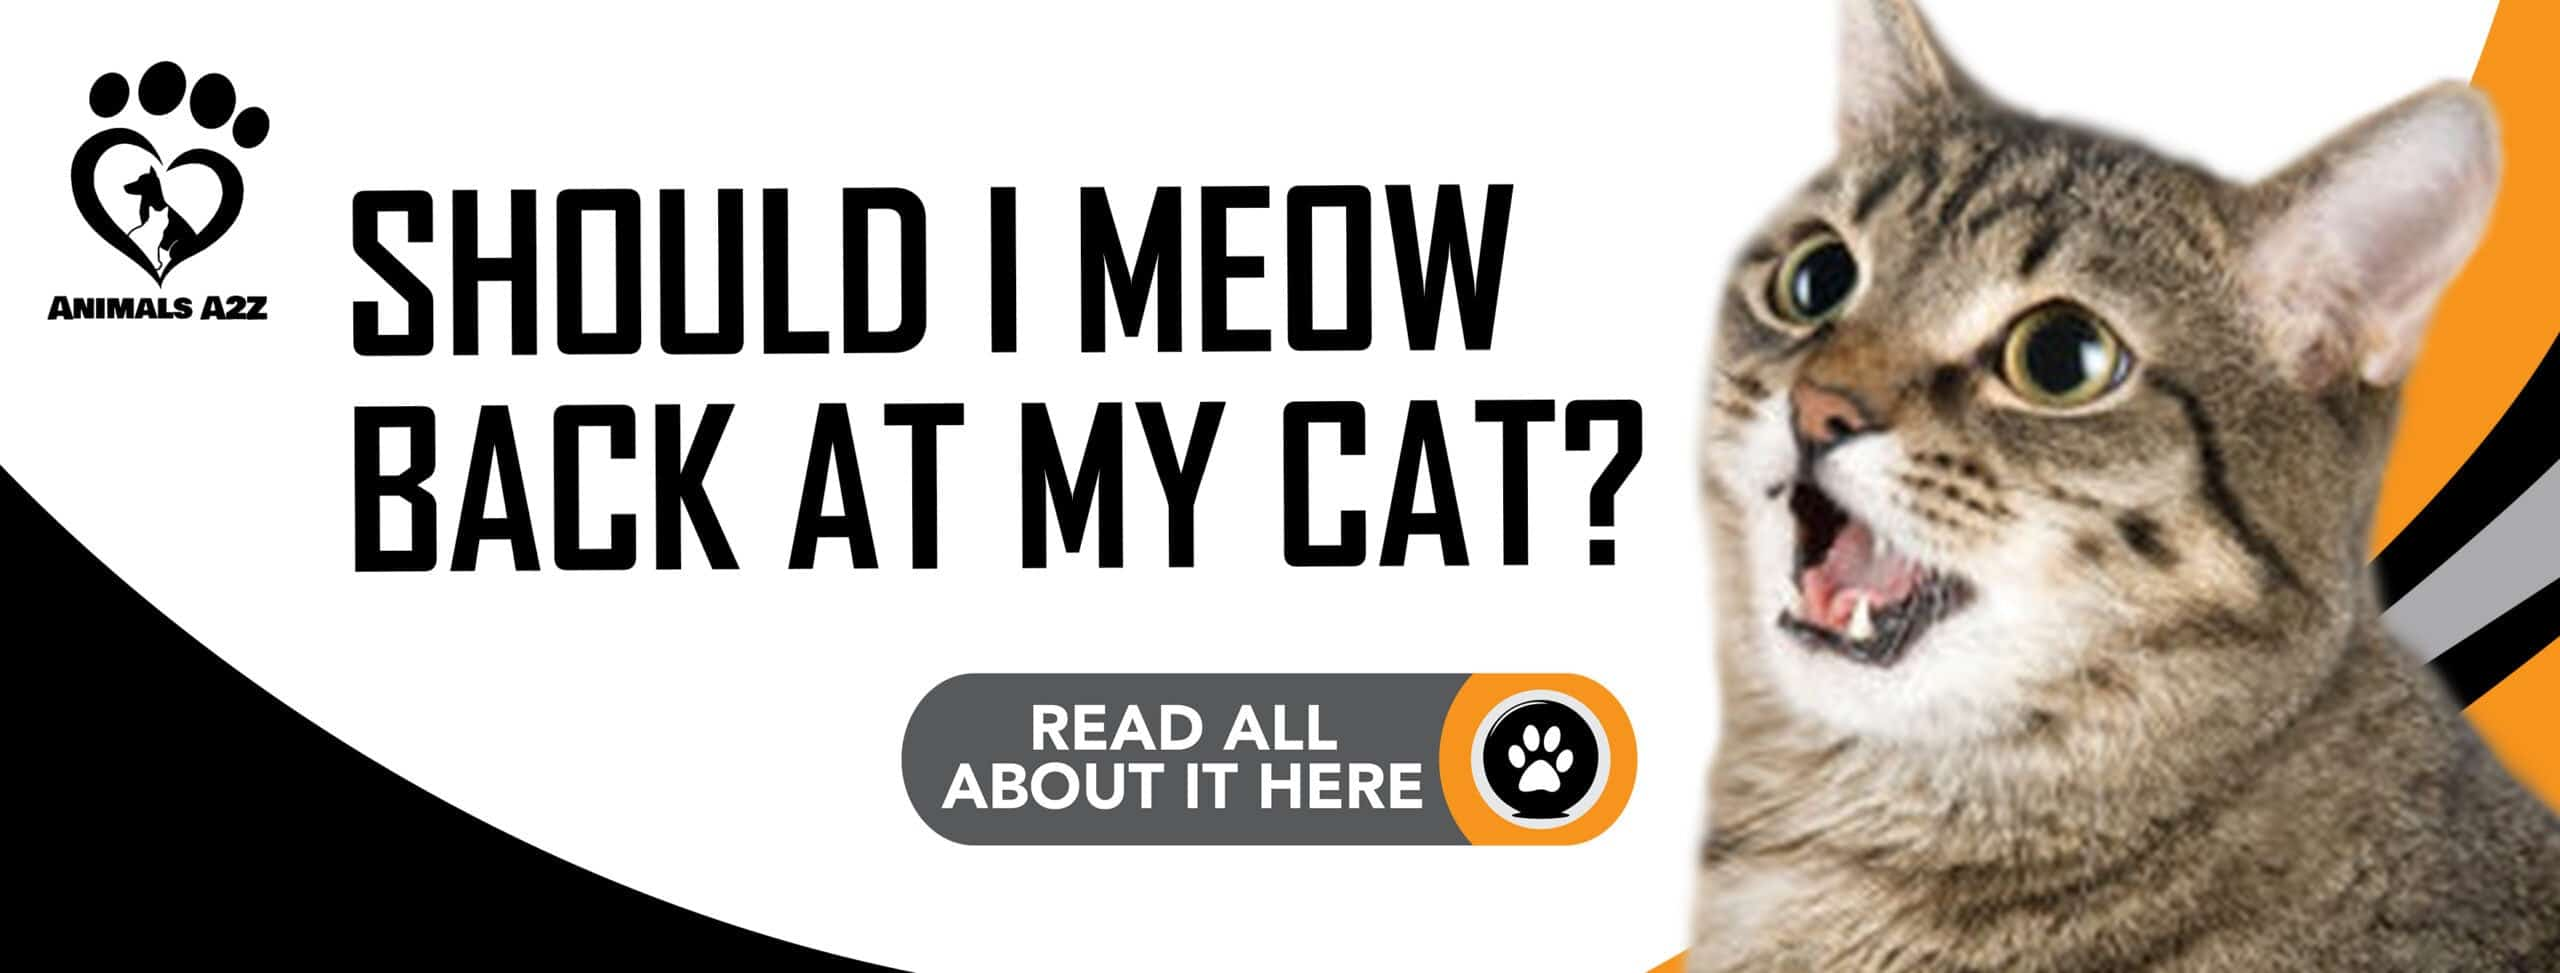 Should I meow back at my cat